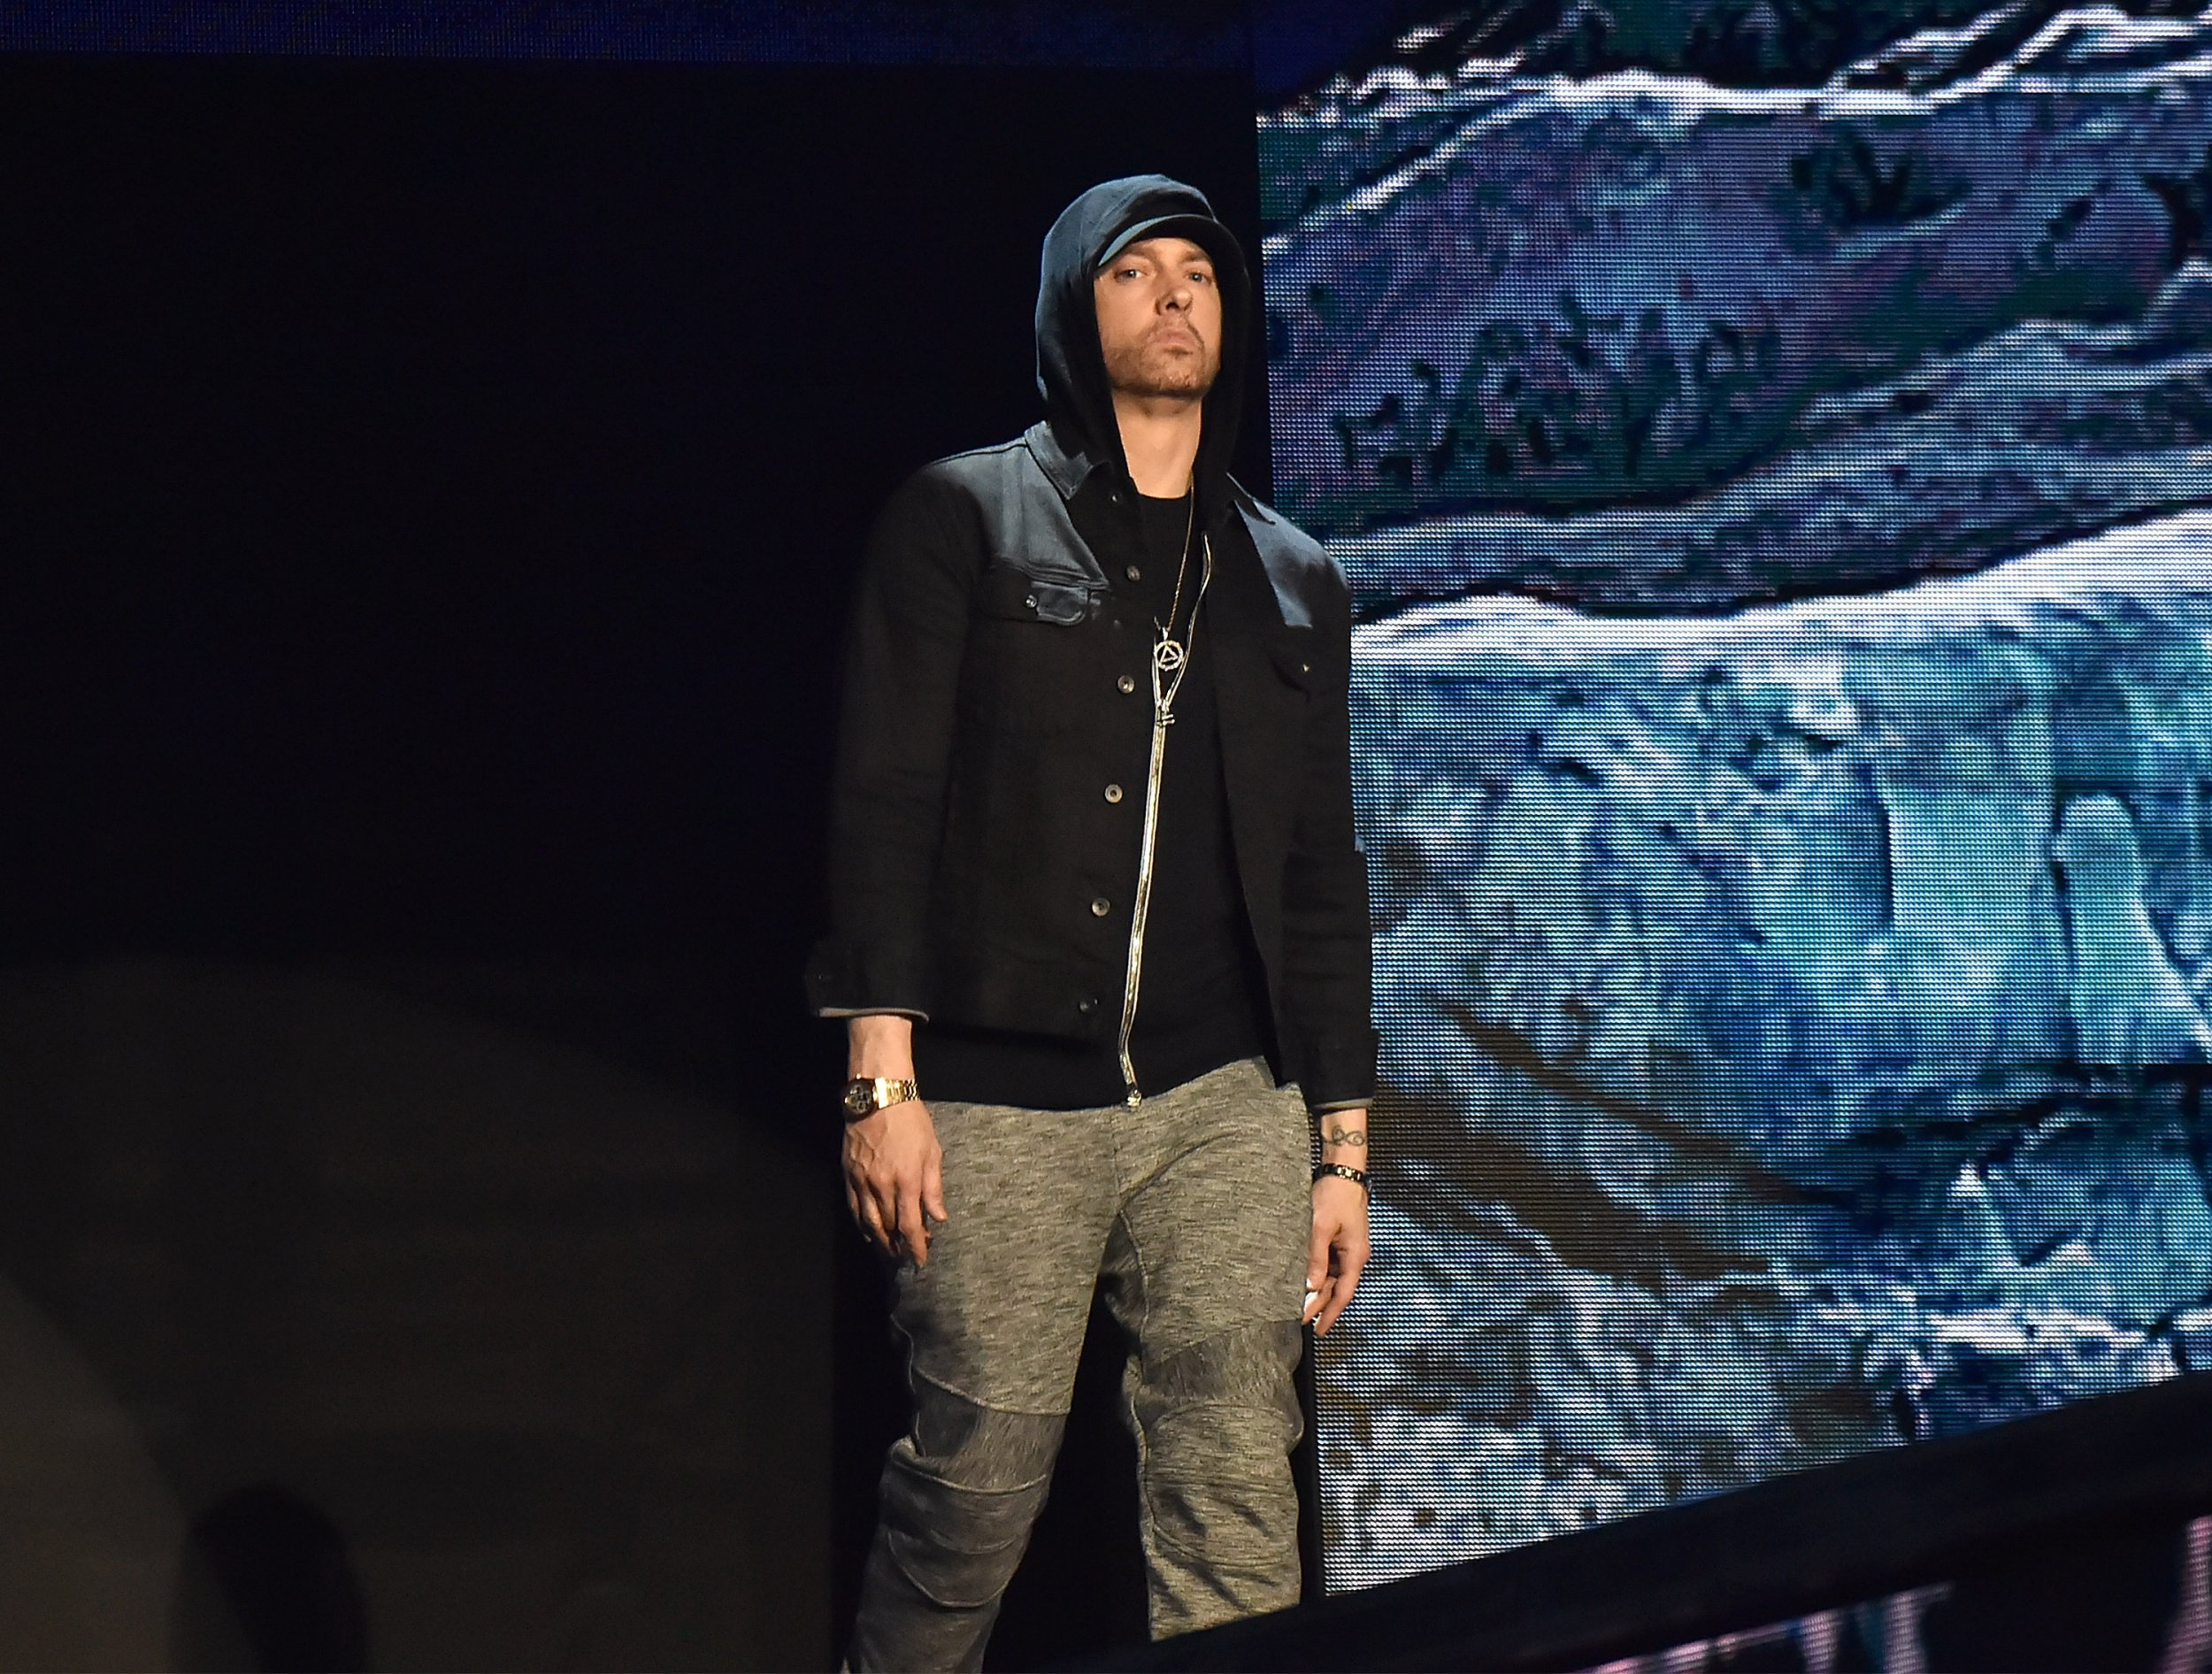 Eminem uses gunshot sounds during Bonnaroo gig leaving fans screaming and 'traumatised'